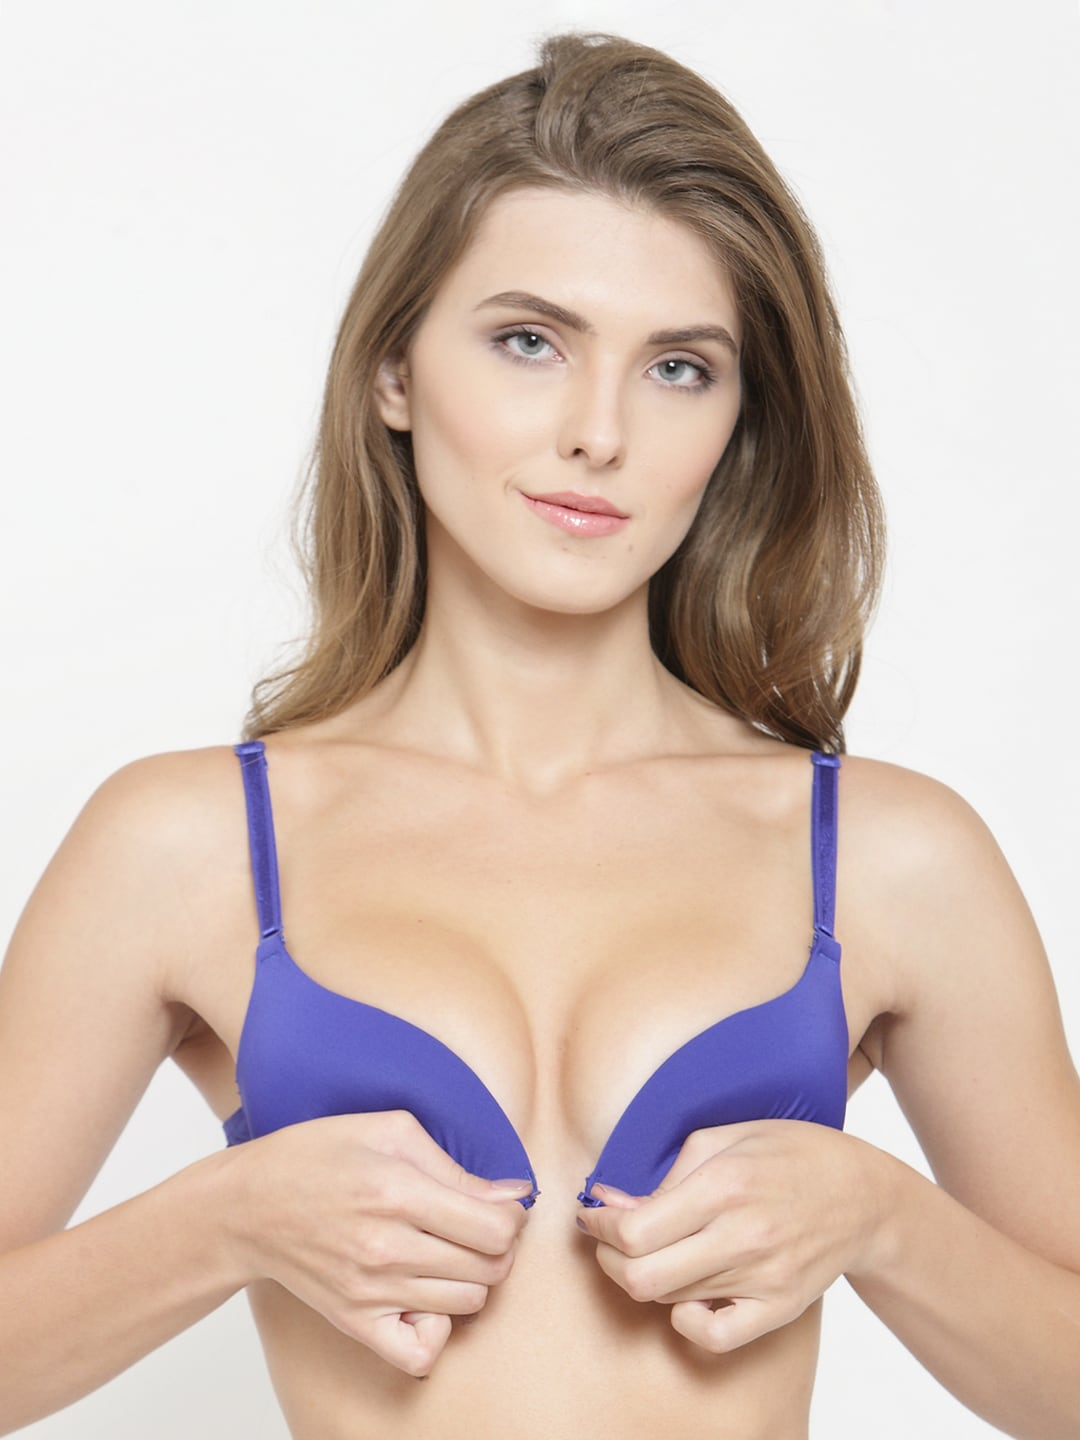 48fad68e2aa40 Front Closure Bra - Buy Front Closure Bras Online in India